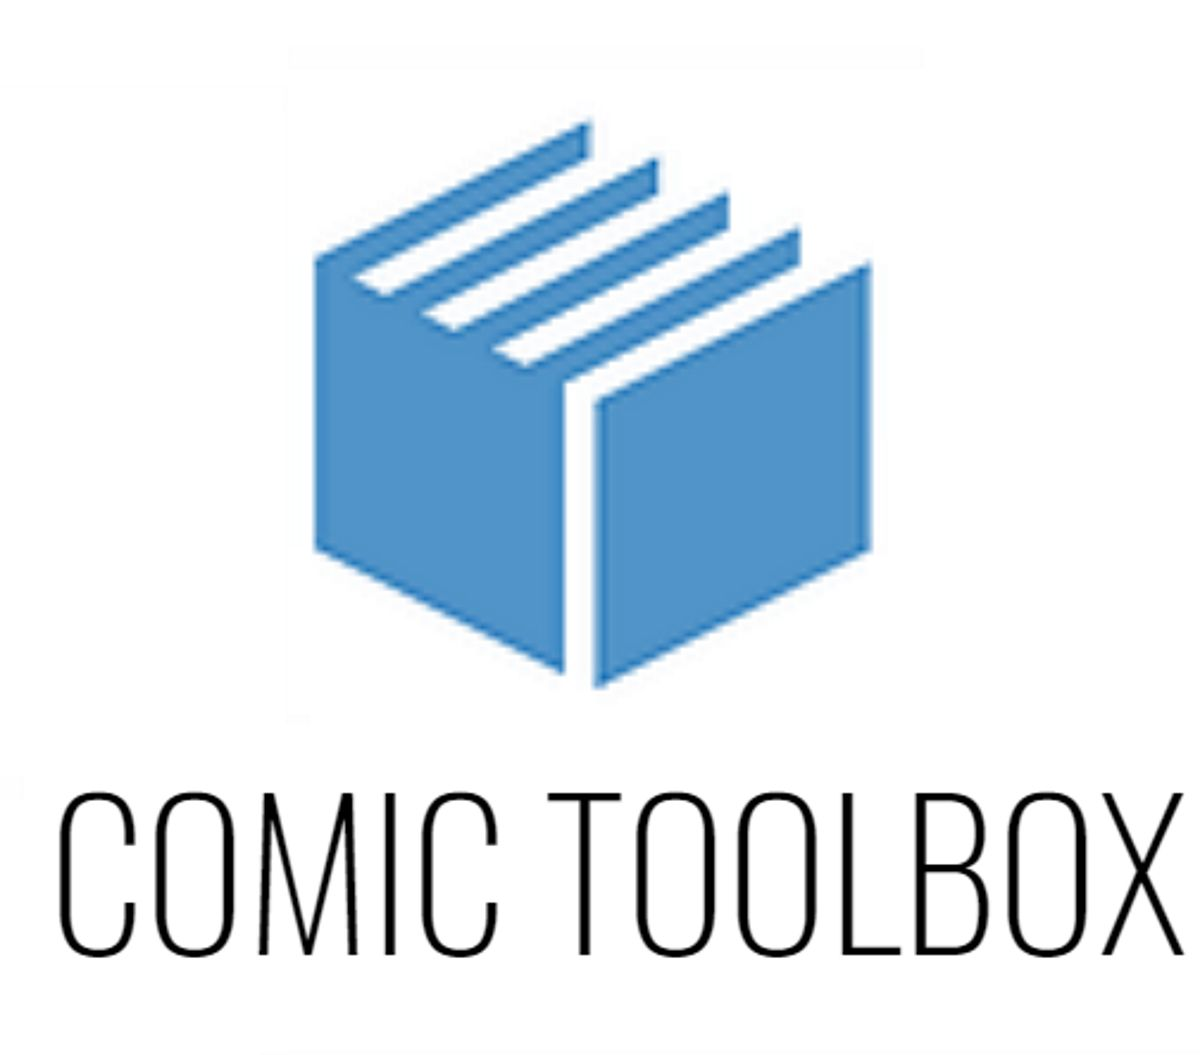 Online Store, Comic Toolbox, Moves Into Orbital to Sell New Comics